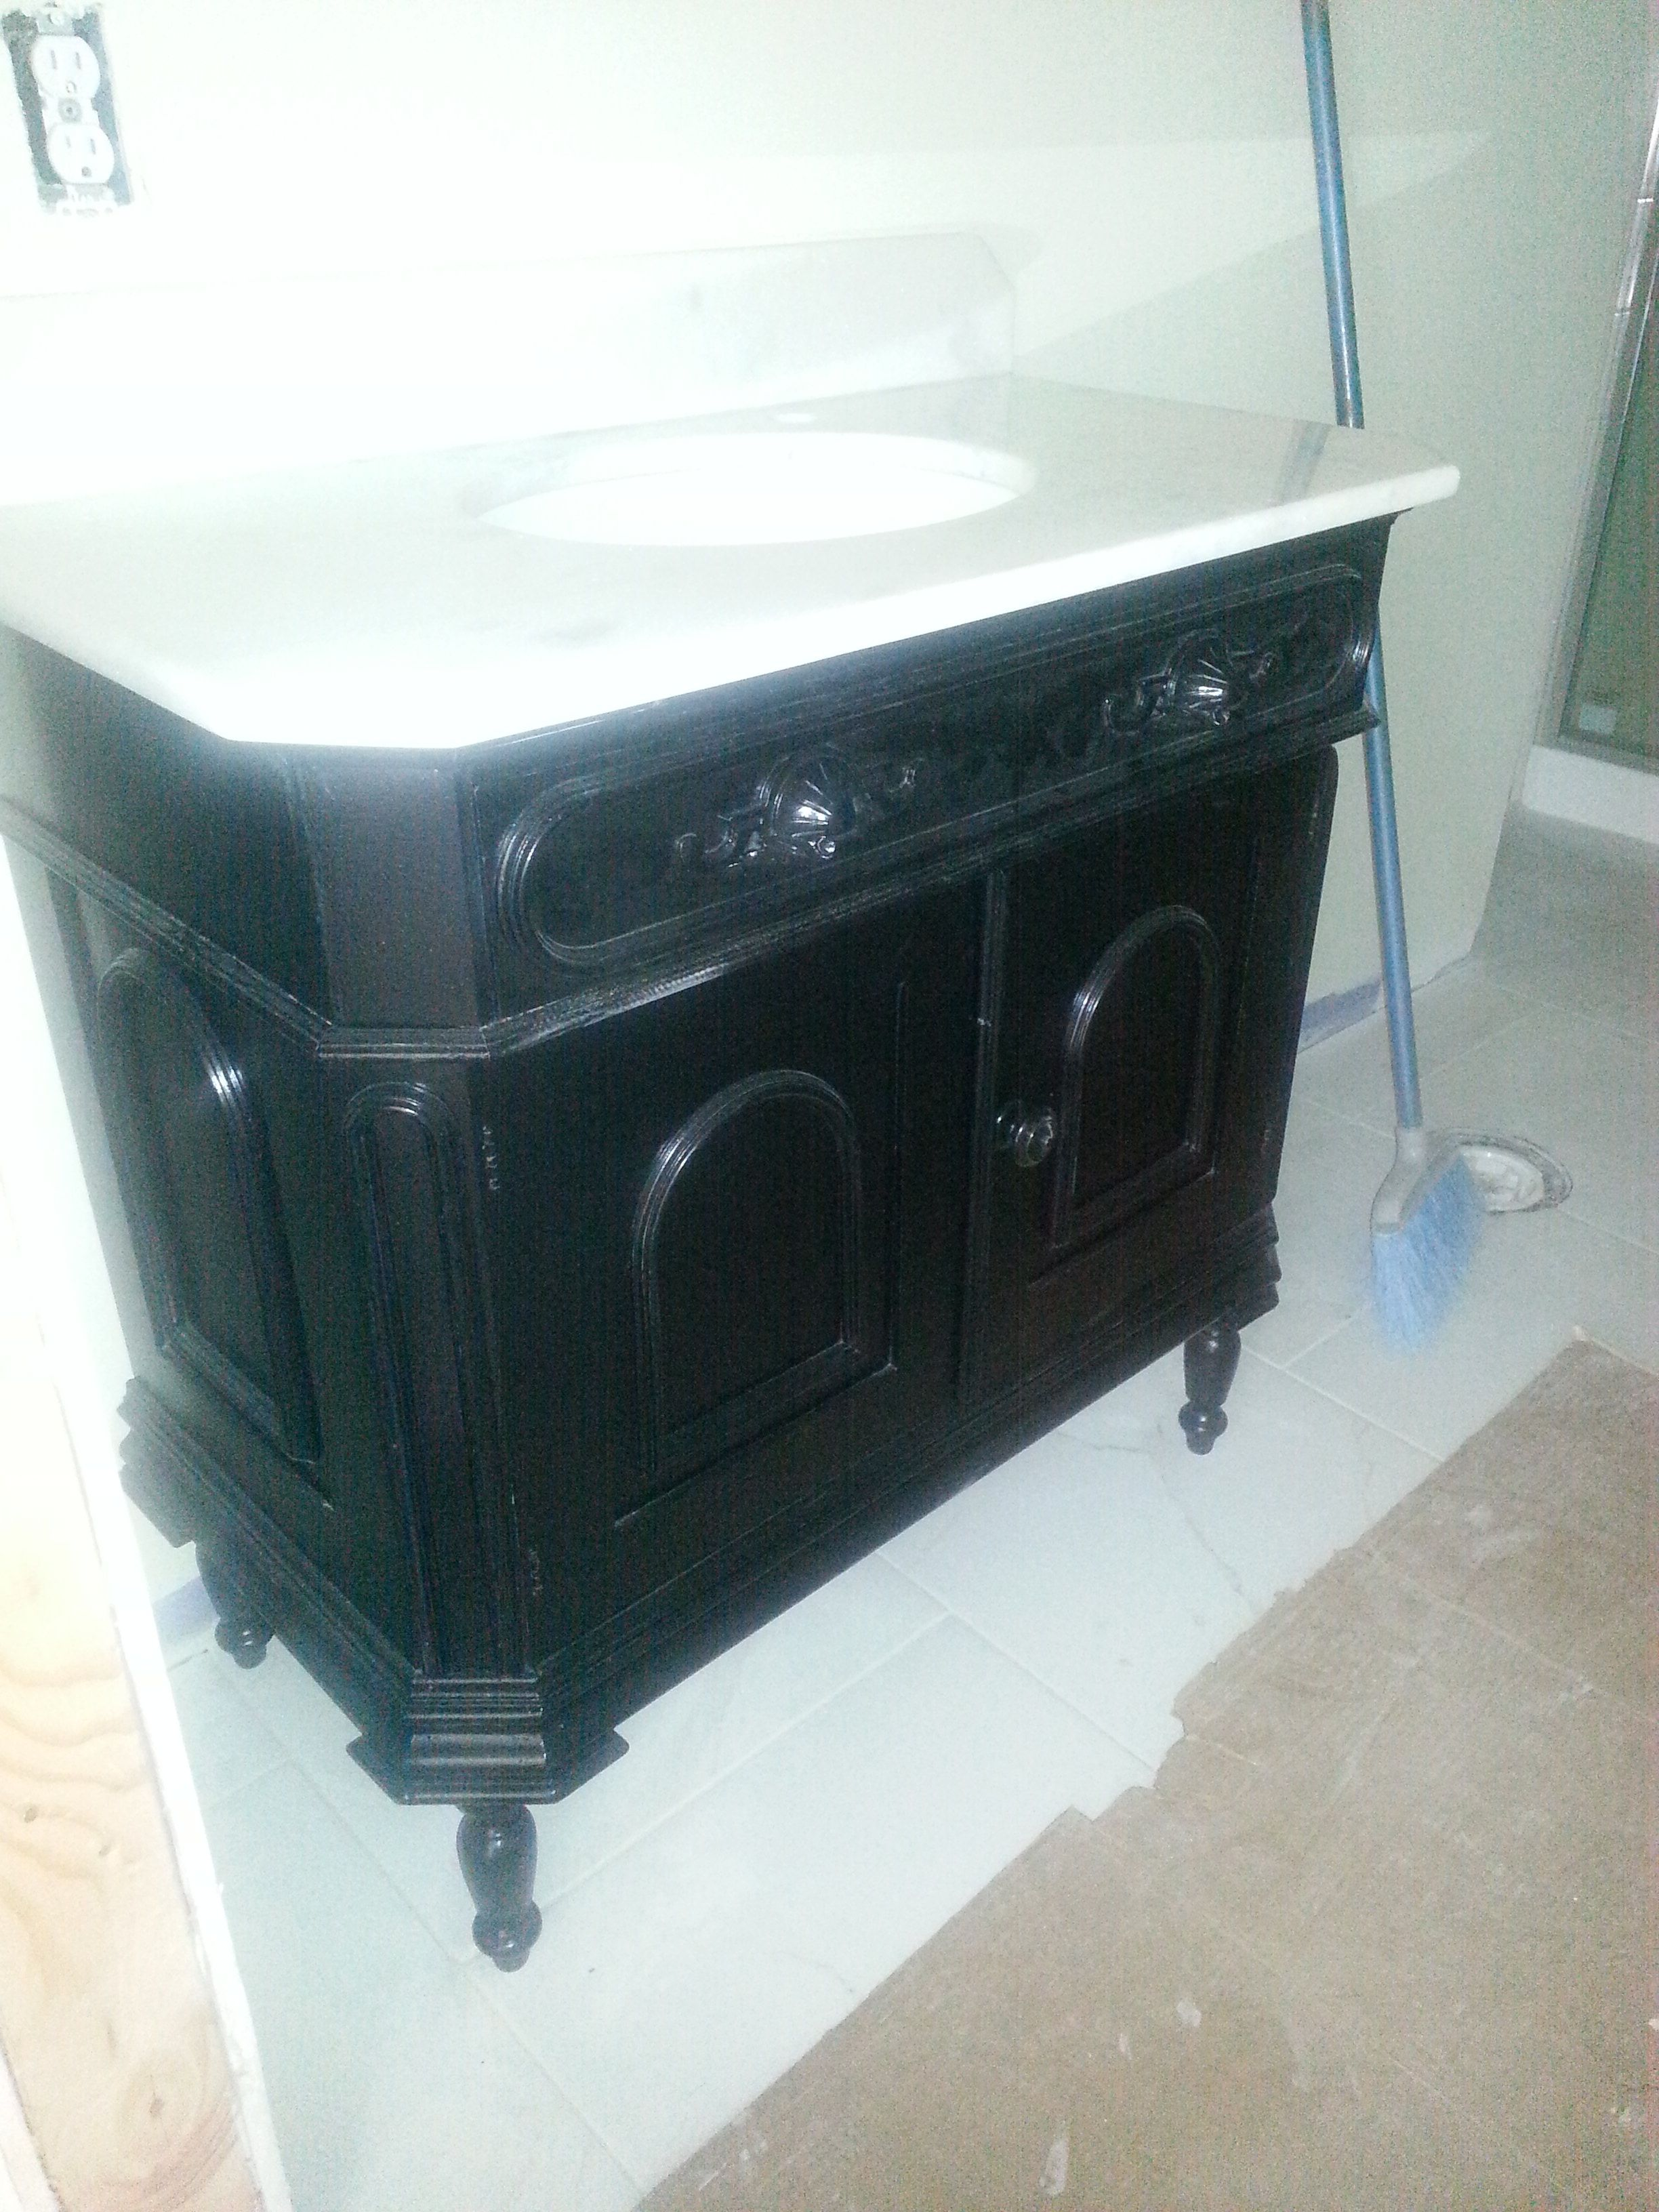 antique dry sink turned into a bath vanity. | Antique dry sink